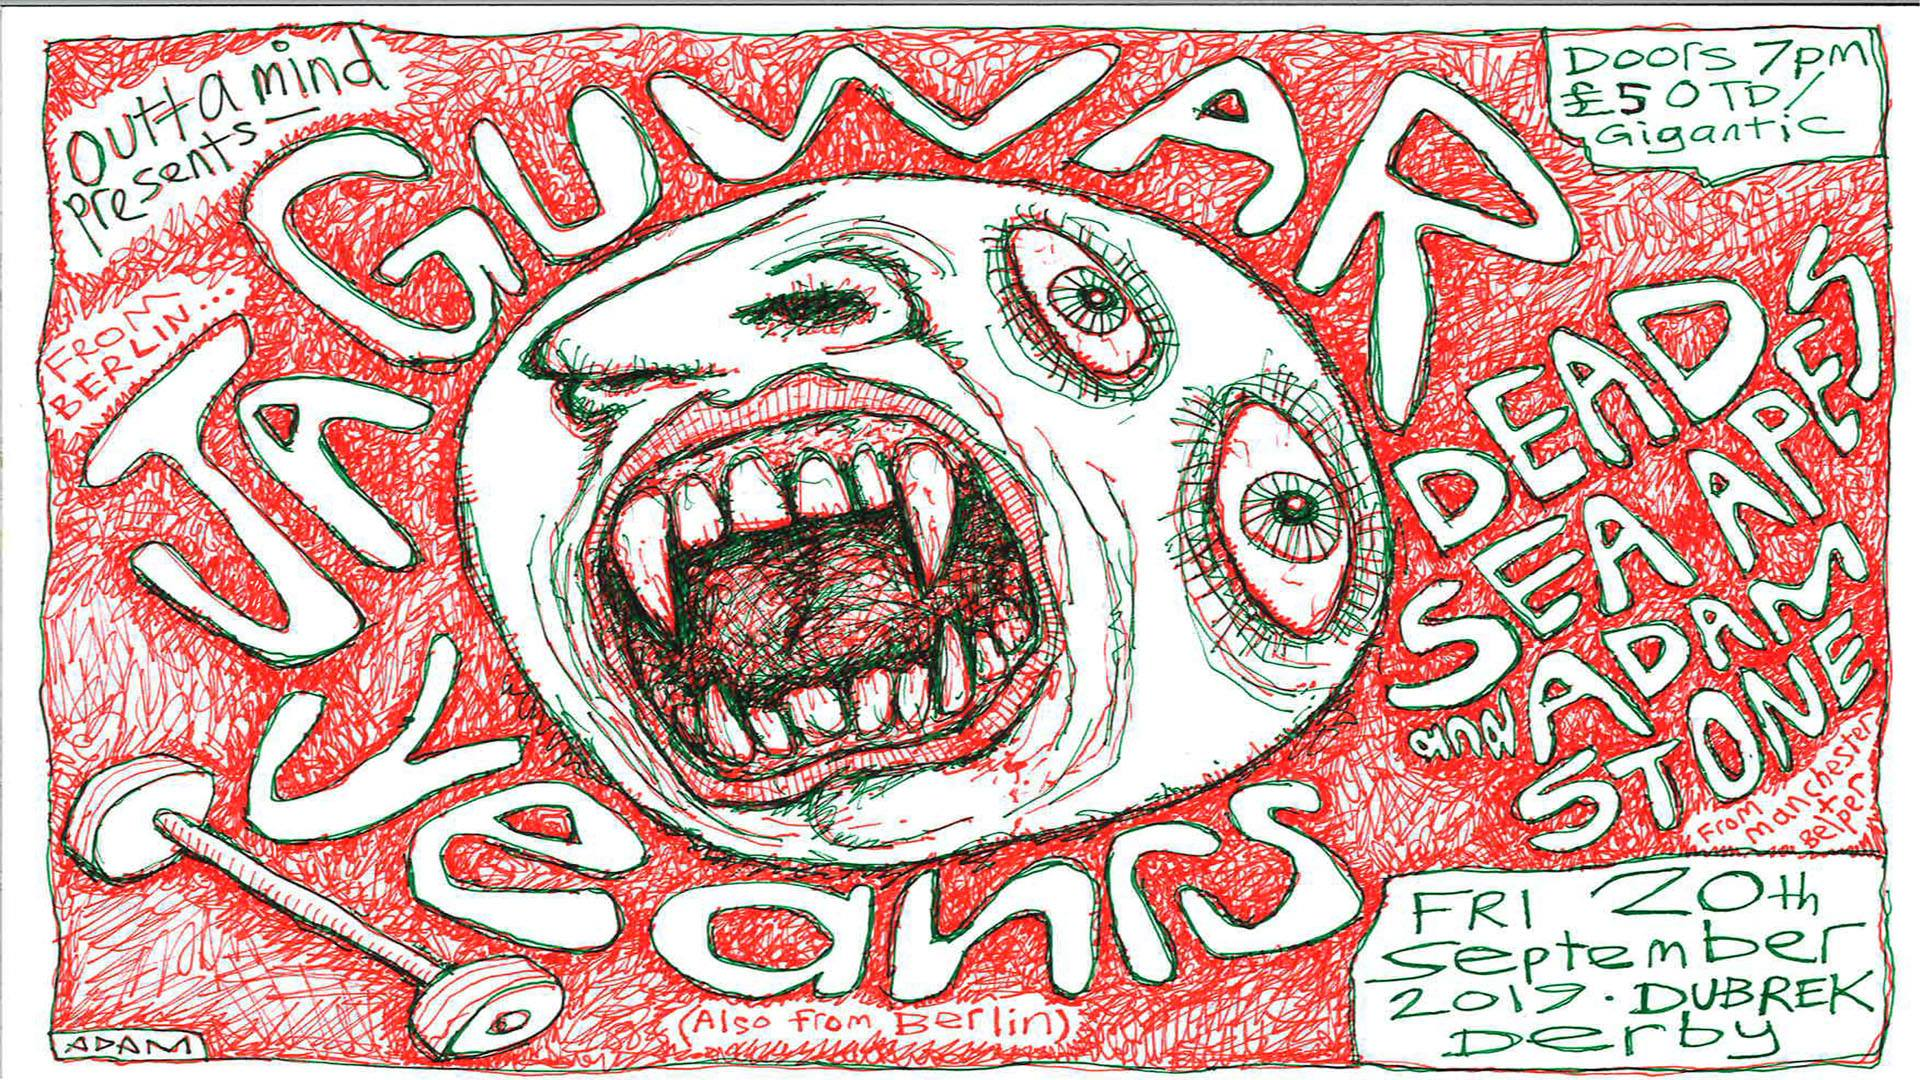 Jaguway + Yeahrs + Adam Stone & Dead Sea Apes - Fri 20th Sept at Dubrek Studios, Derby.